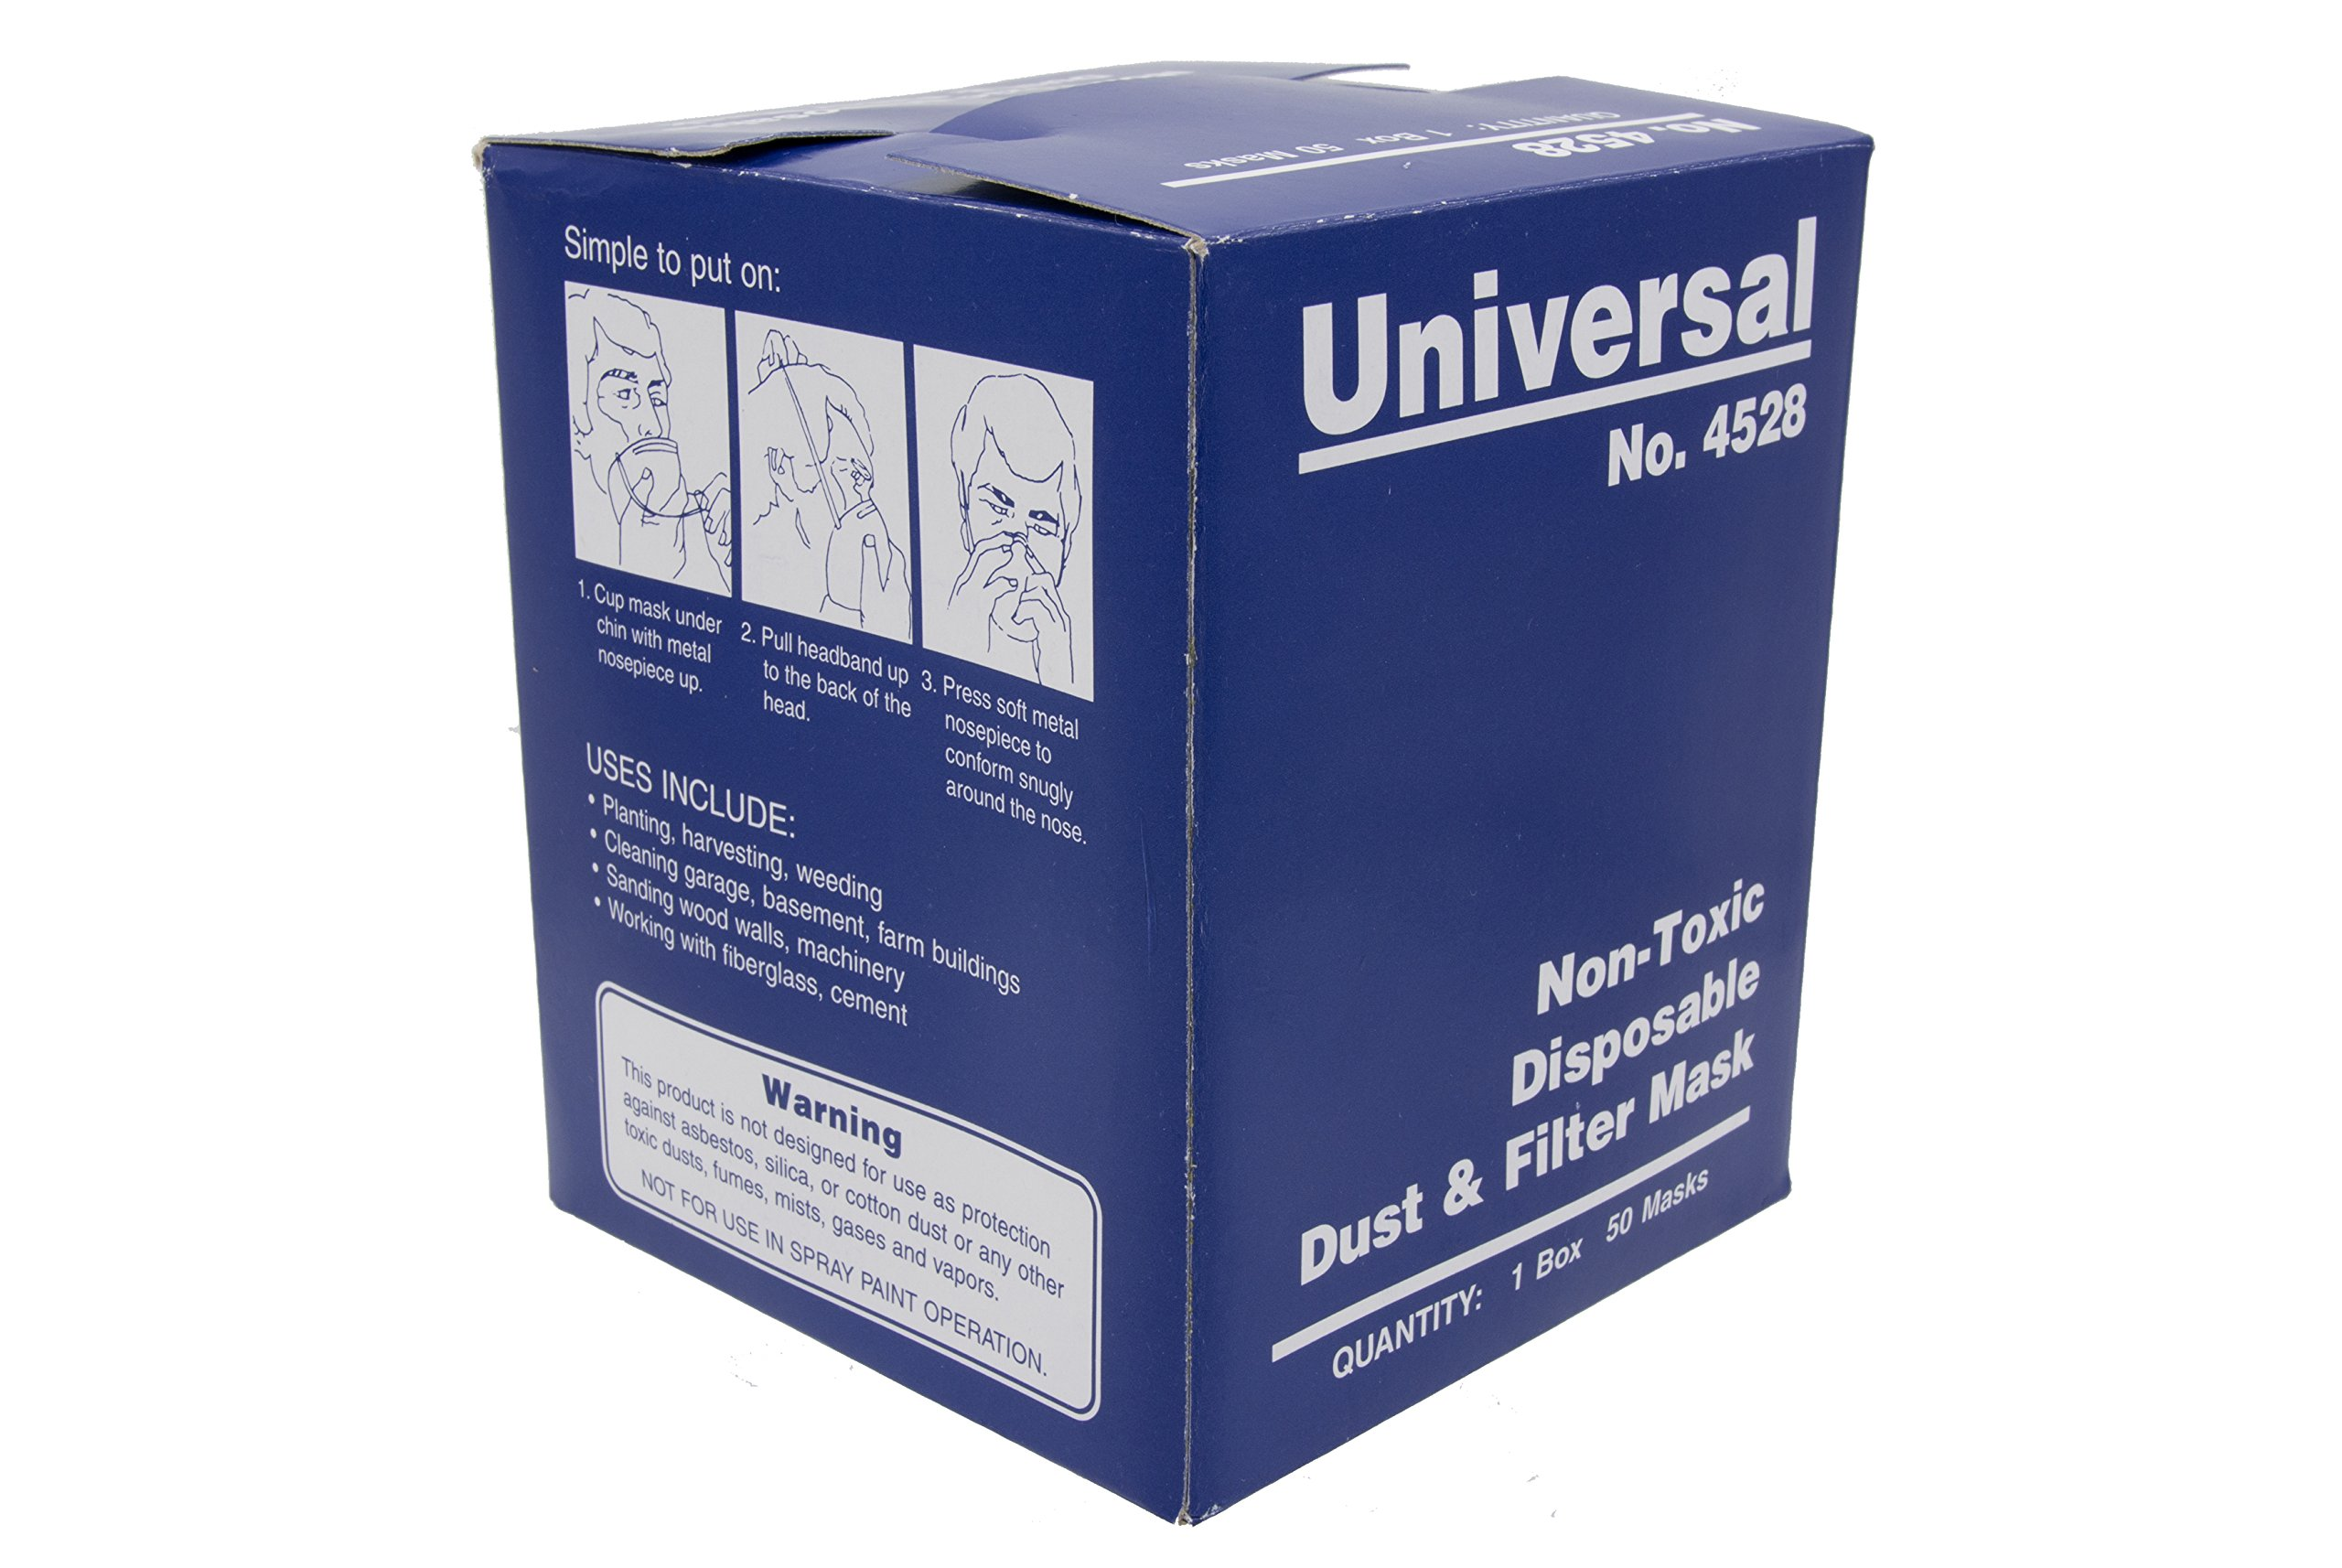 Universal 4528 Non-Toxic Disposable Dust & Filter Safety Masks 3